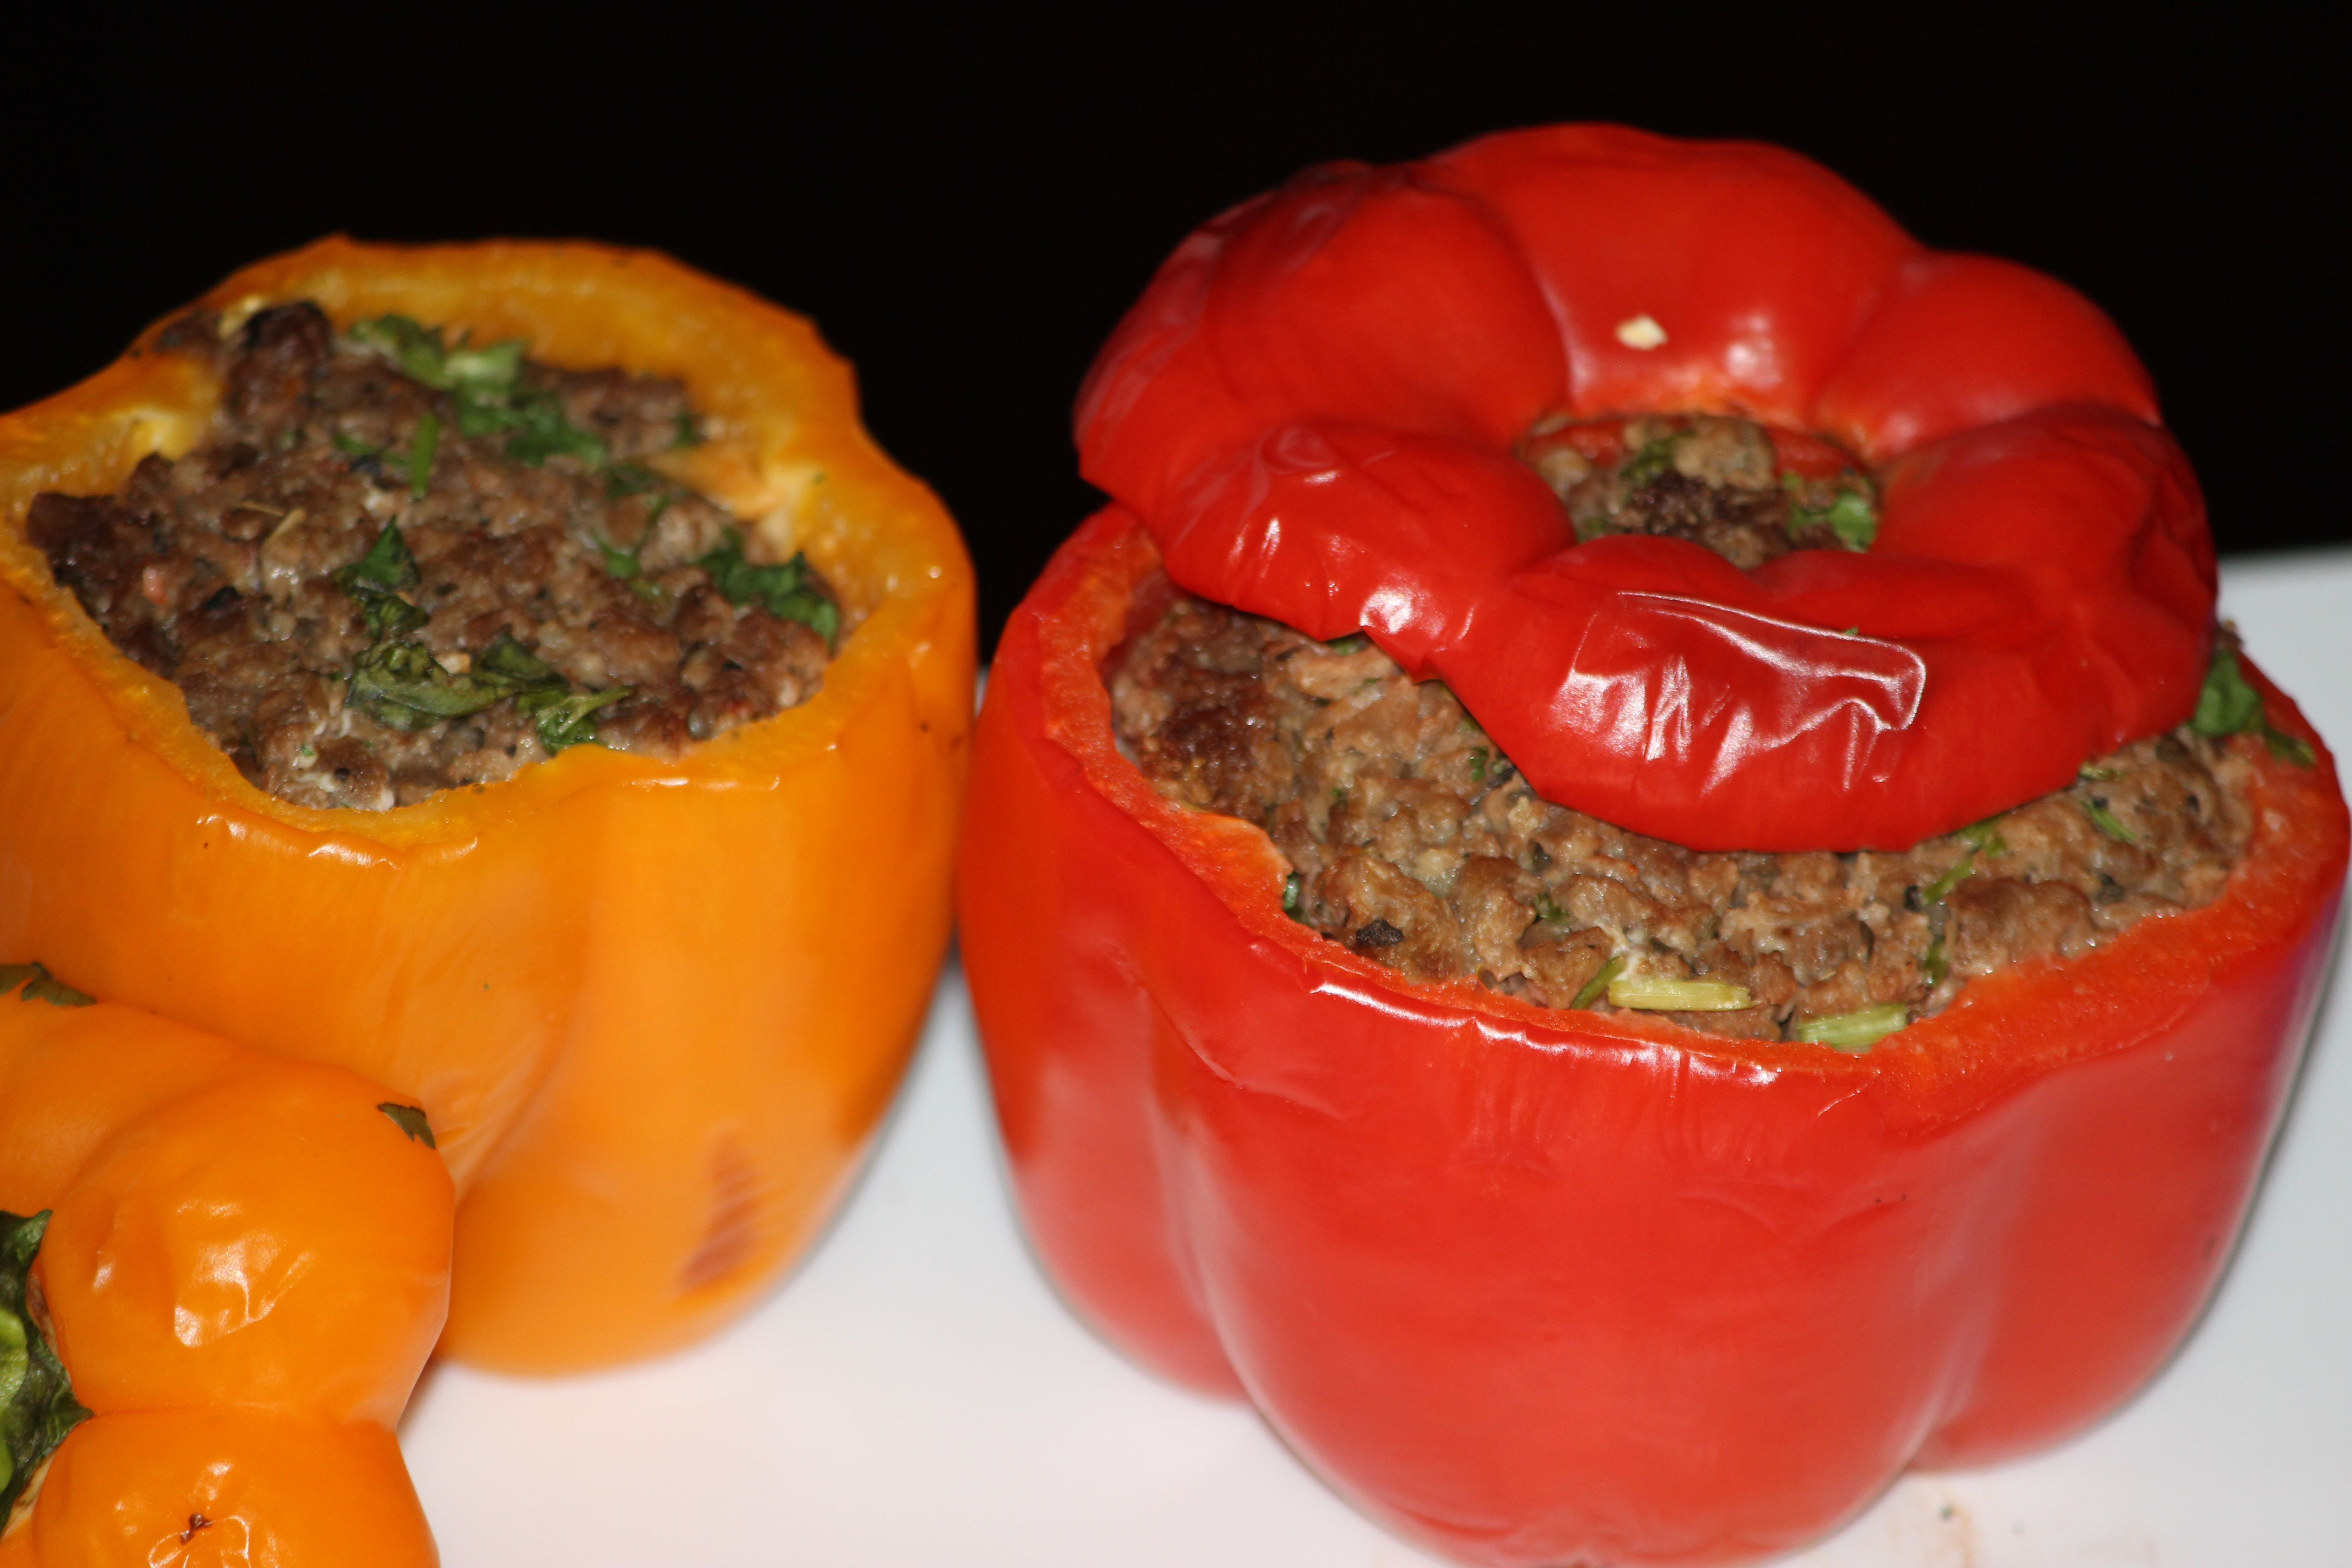 City of toronto stuffed peppers vegan dishes jamaican